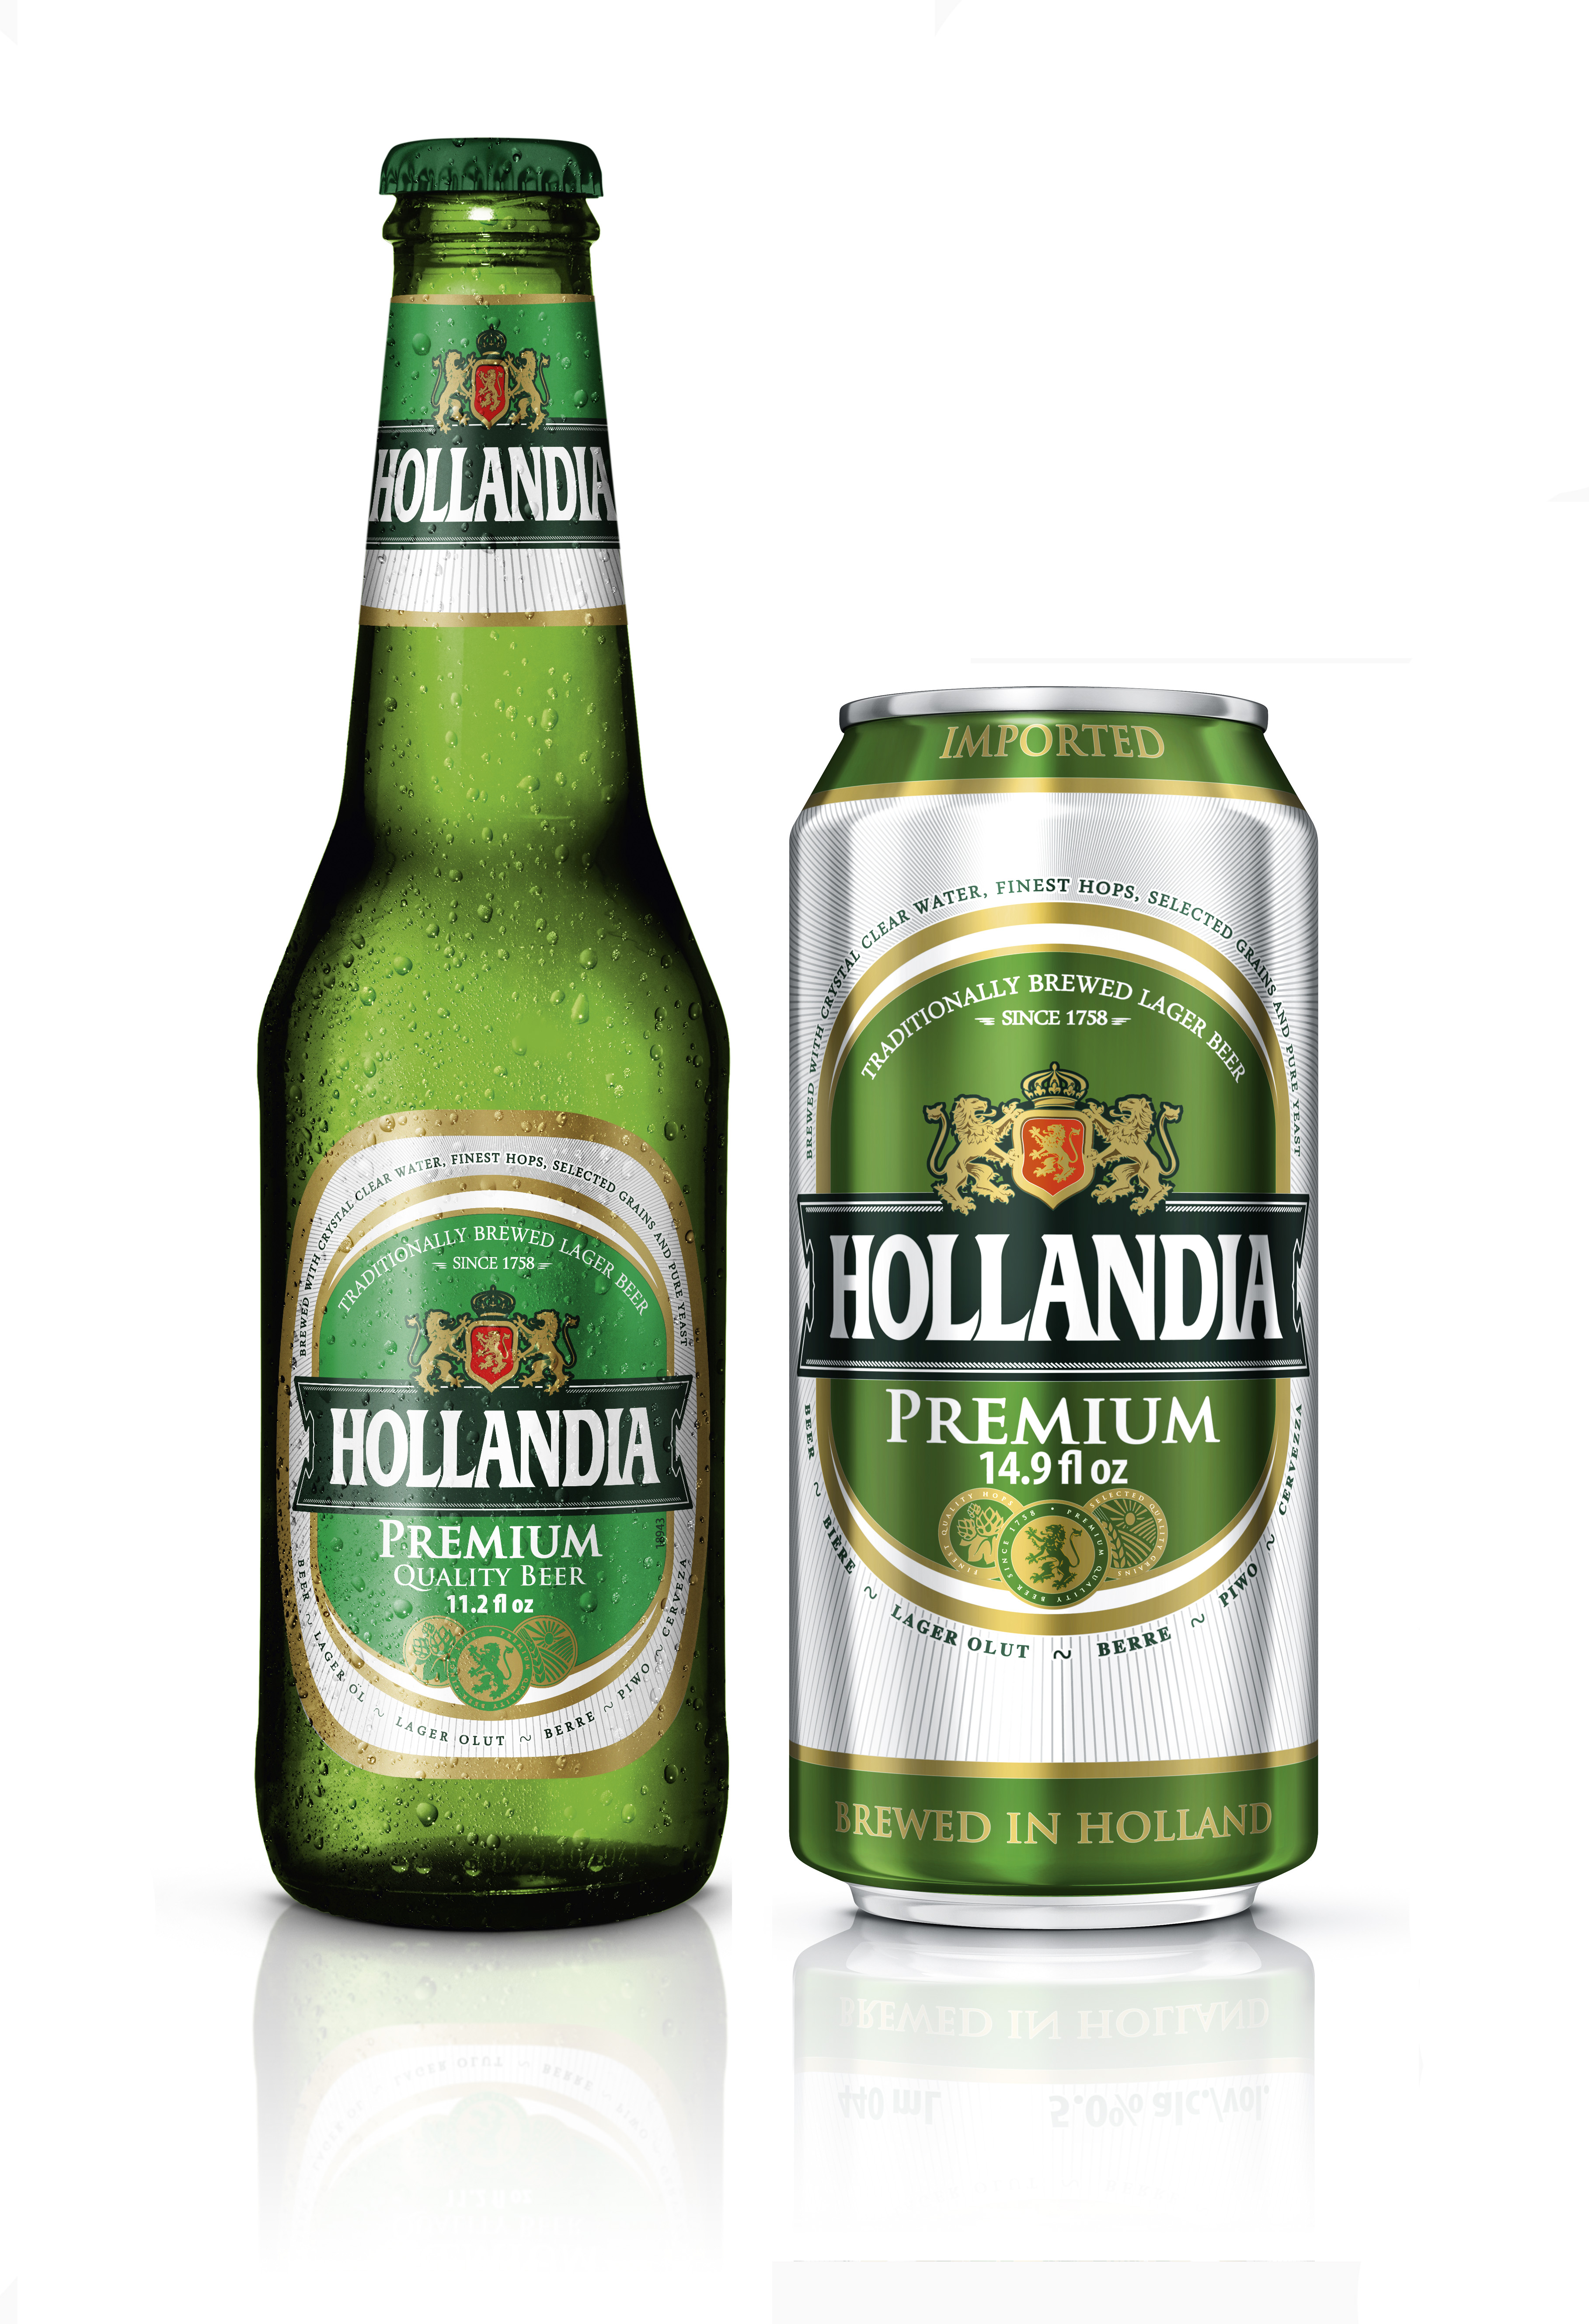 http://www.sfbimports.com/wp-content/uploads/2017/05/Hollandia-bottle-and-can.jpg